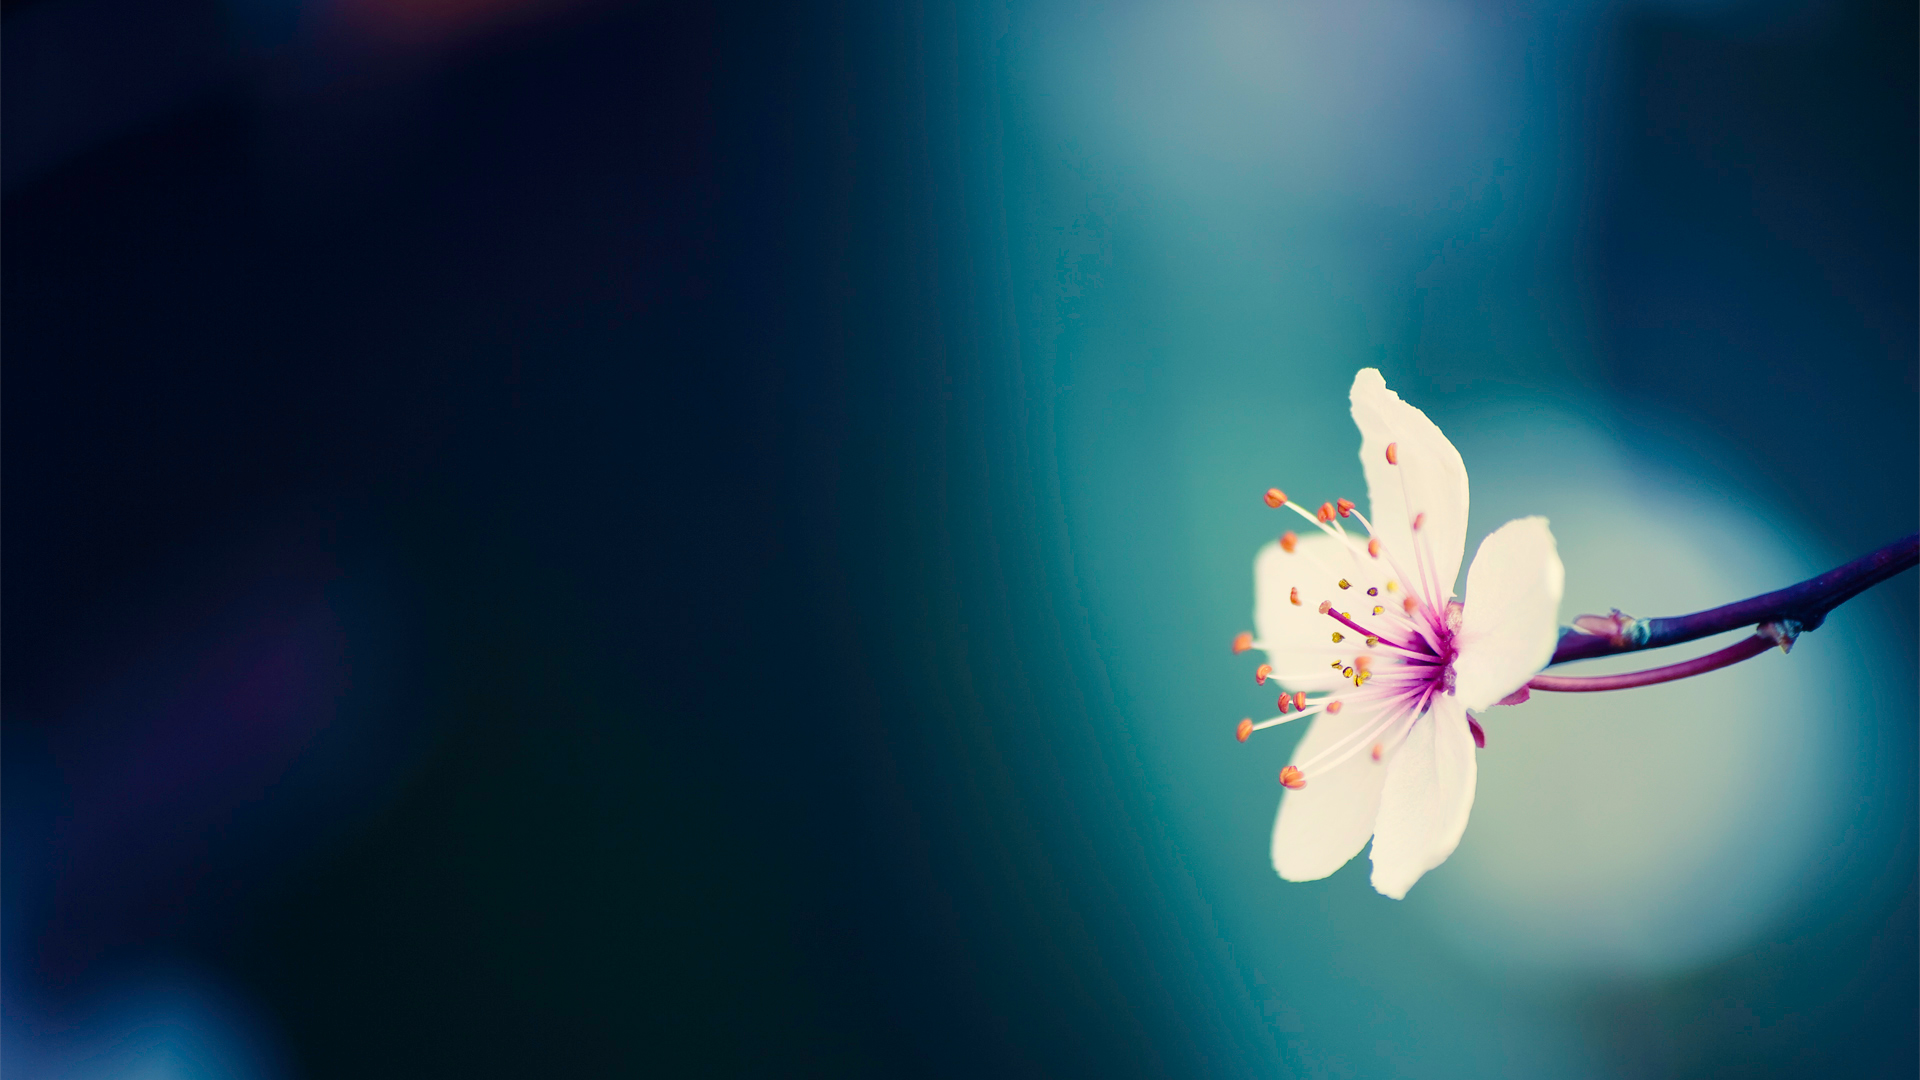 11 amazing flower wallpapers to add a splash of color to your 11 amazing flower wallpapers to add a splash of color to your devices androidguys mightylinksfo